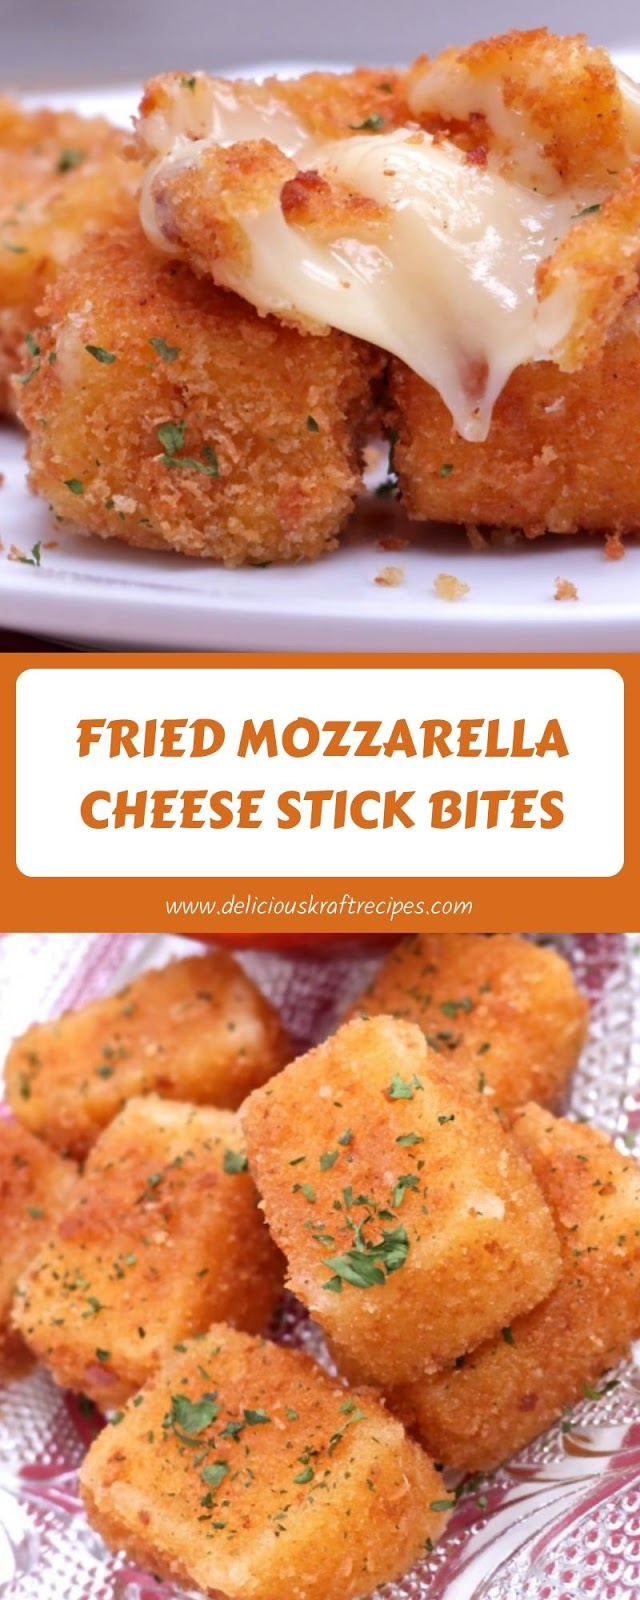 FRIED MOZZARELLA CHEESE STICK BITES